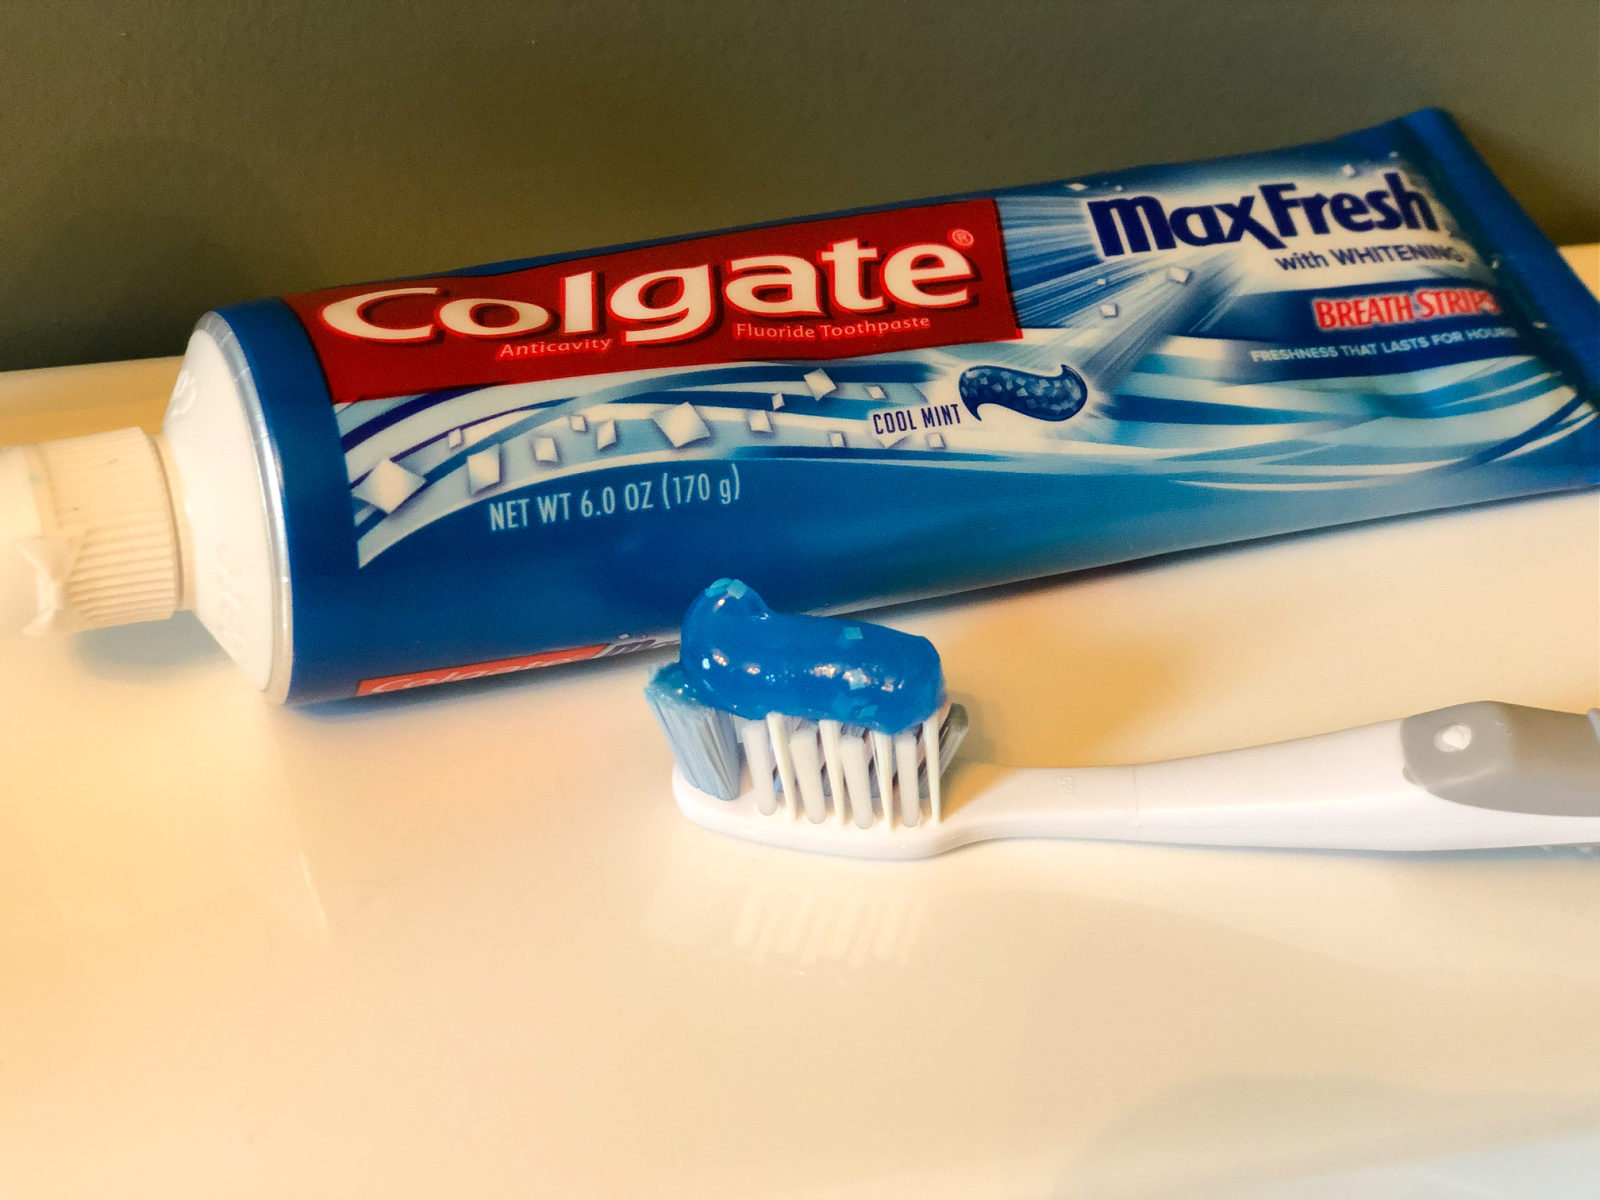 Colgate Toothpaste As Low As 4¢ At Publix on I Heart Publix 1